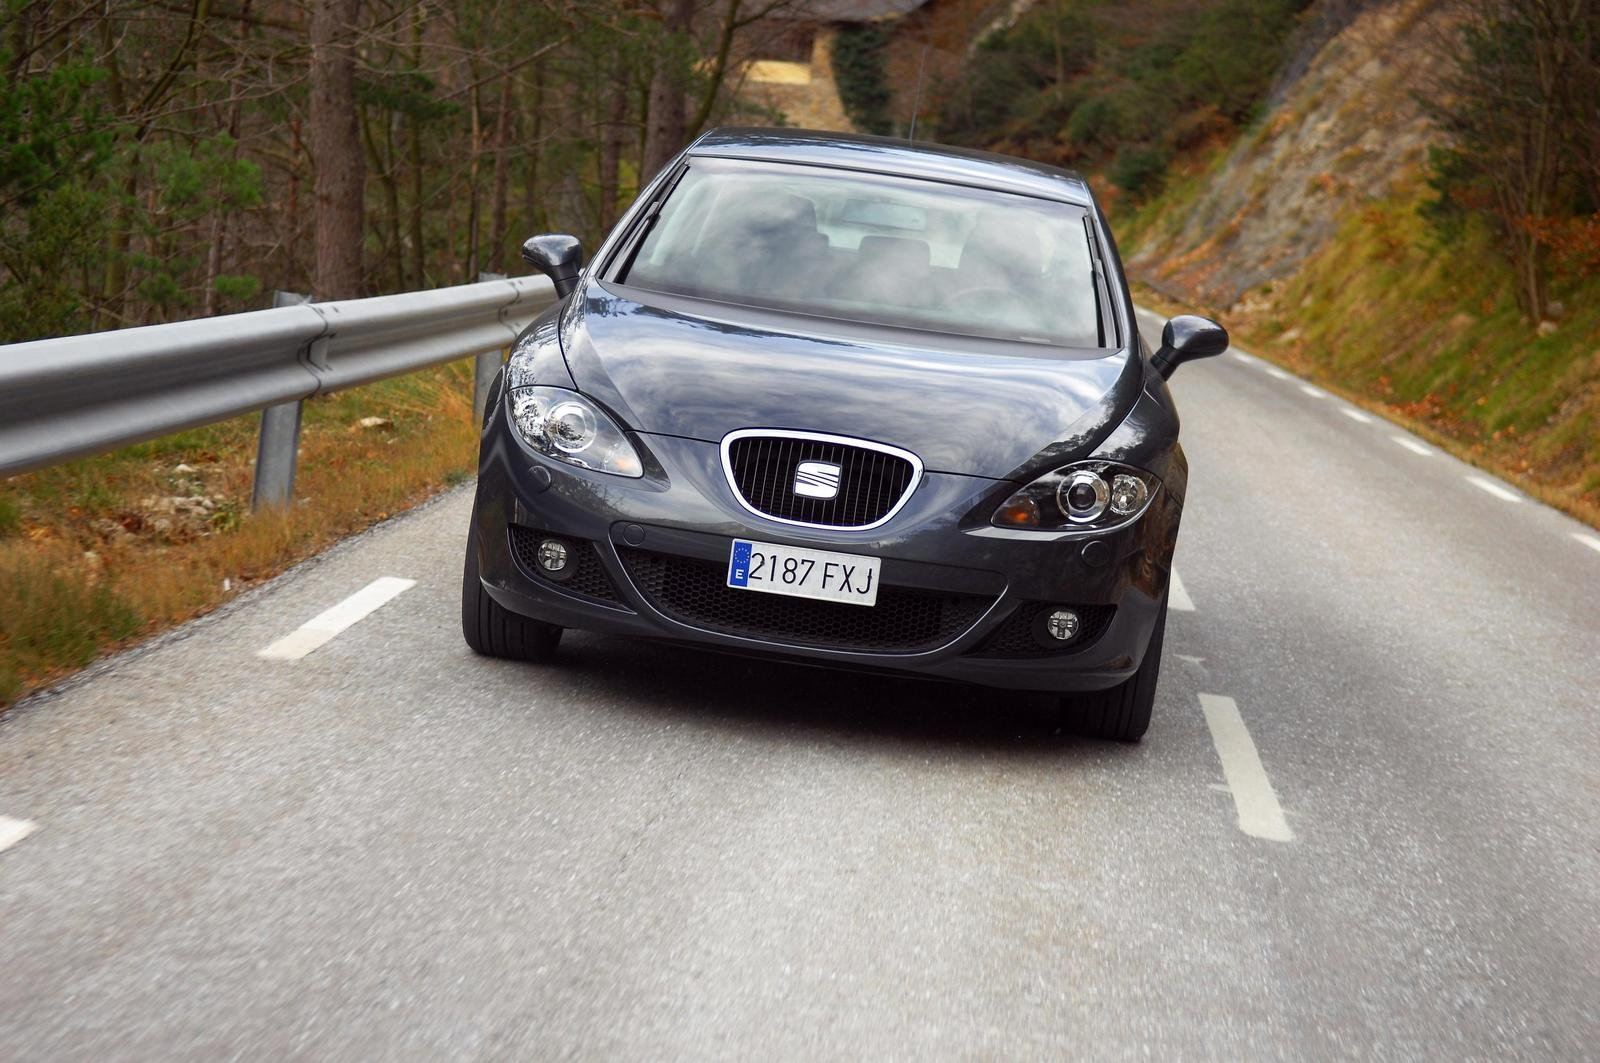 2008 seat leon 1 4 tsi picture 217775 car review top speed. Black Bedroom Furniture Sets. Home Design Ideas